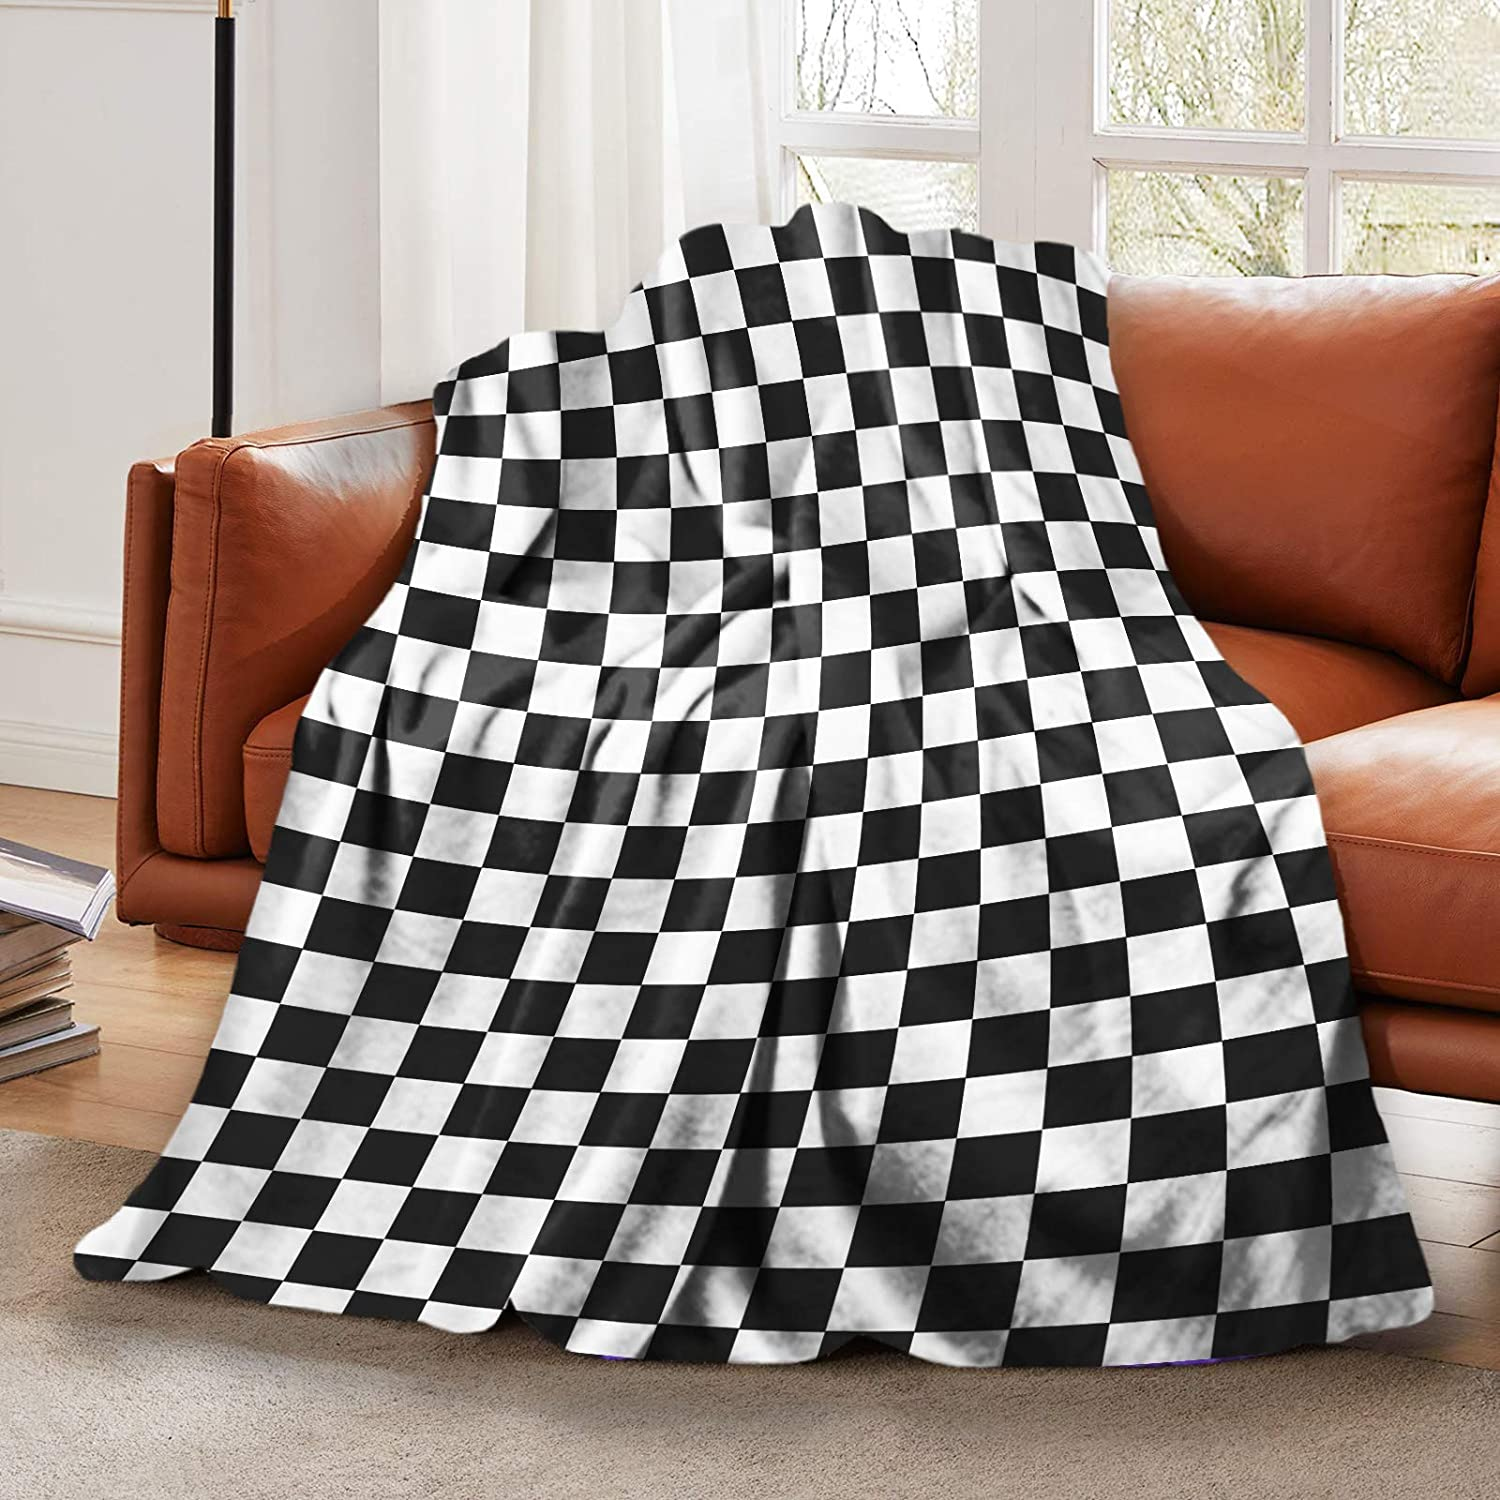 "LELEMATE Plush Fluffy Throw Blanket Race Waving Checkered Flag Bed Blanket for Boys Girls Teens Smooth Soft Flannel Blanket for Sofa Chair Office Travel Camping Outdoor Home Decor 50""x60"""